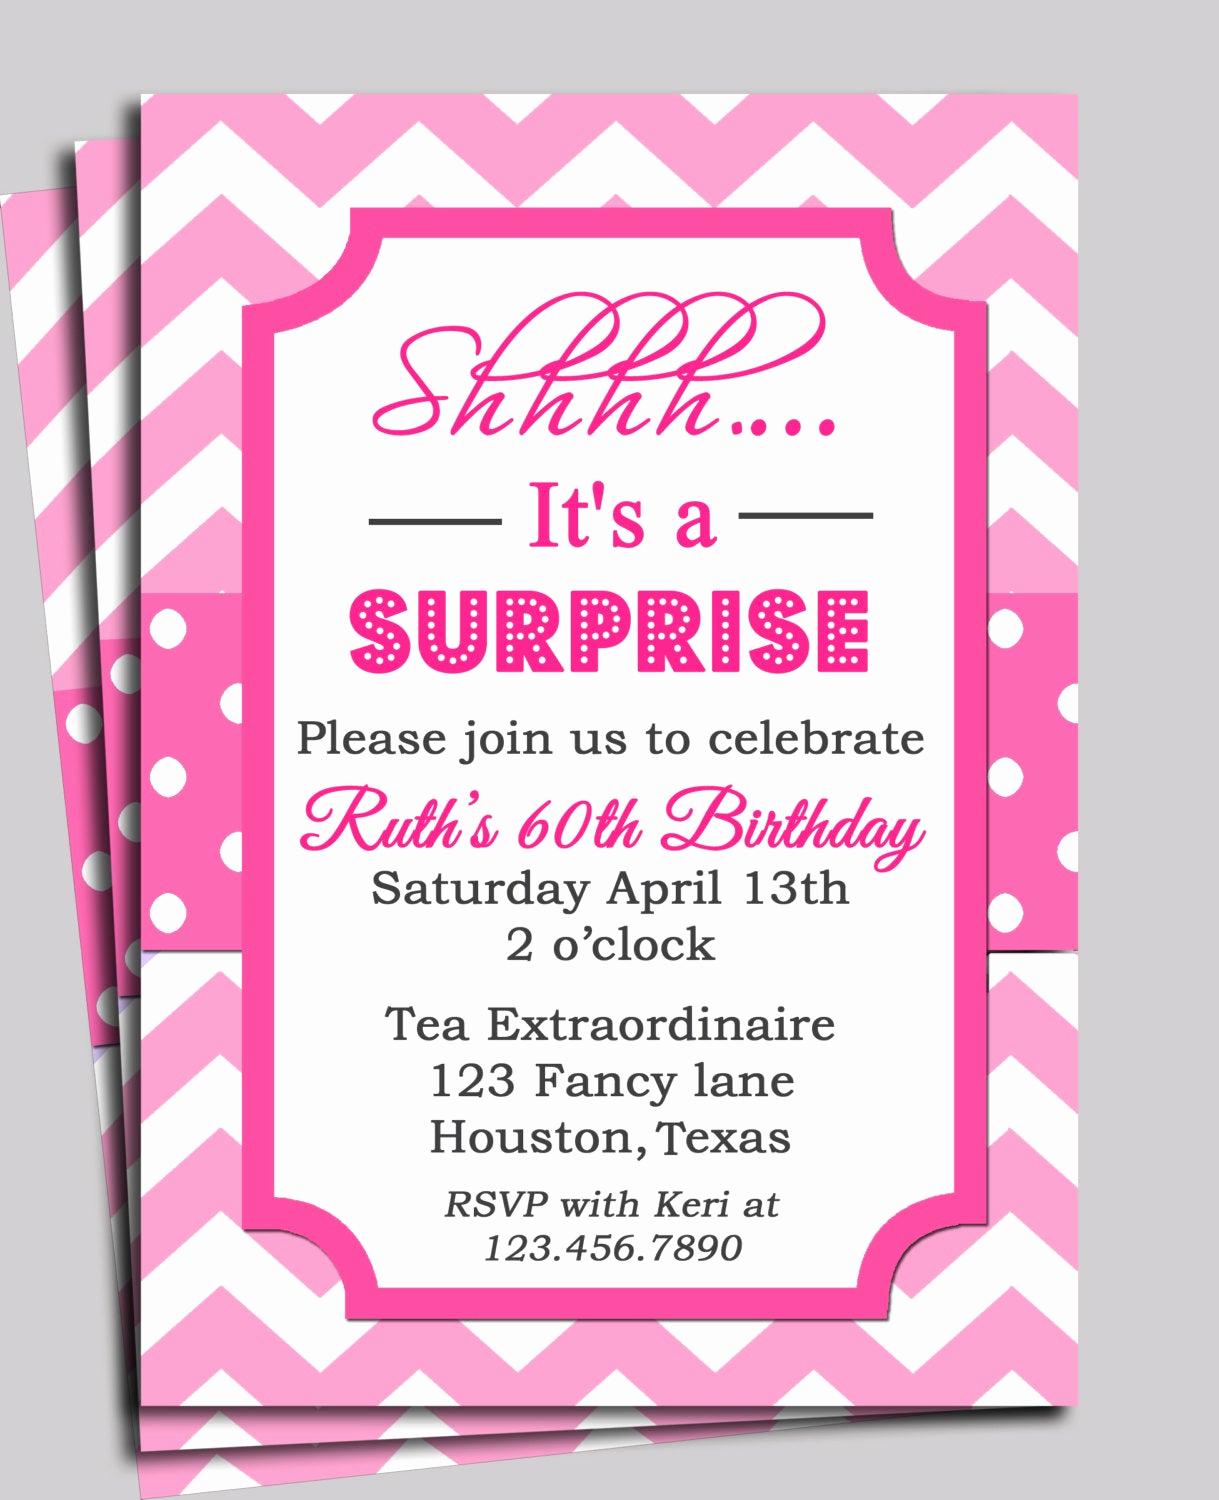 Baby Shower Invitation Messages Beautiful Chevron Invitation Printable or Free Shipping You Pick